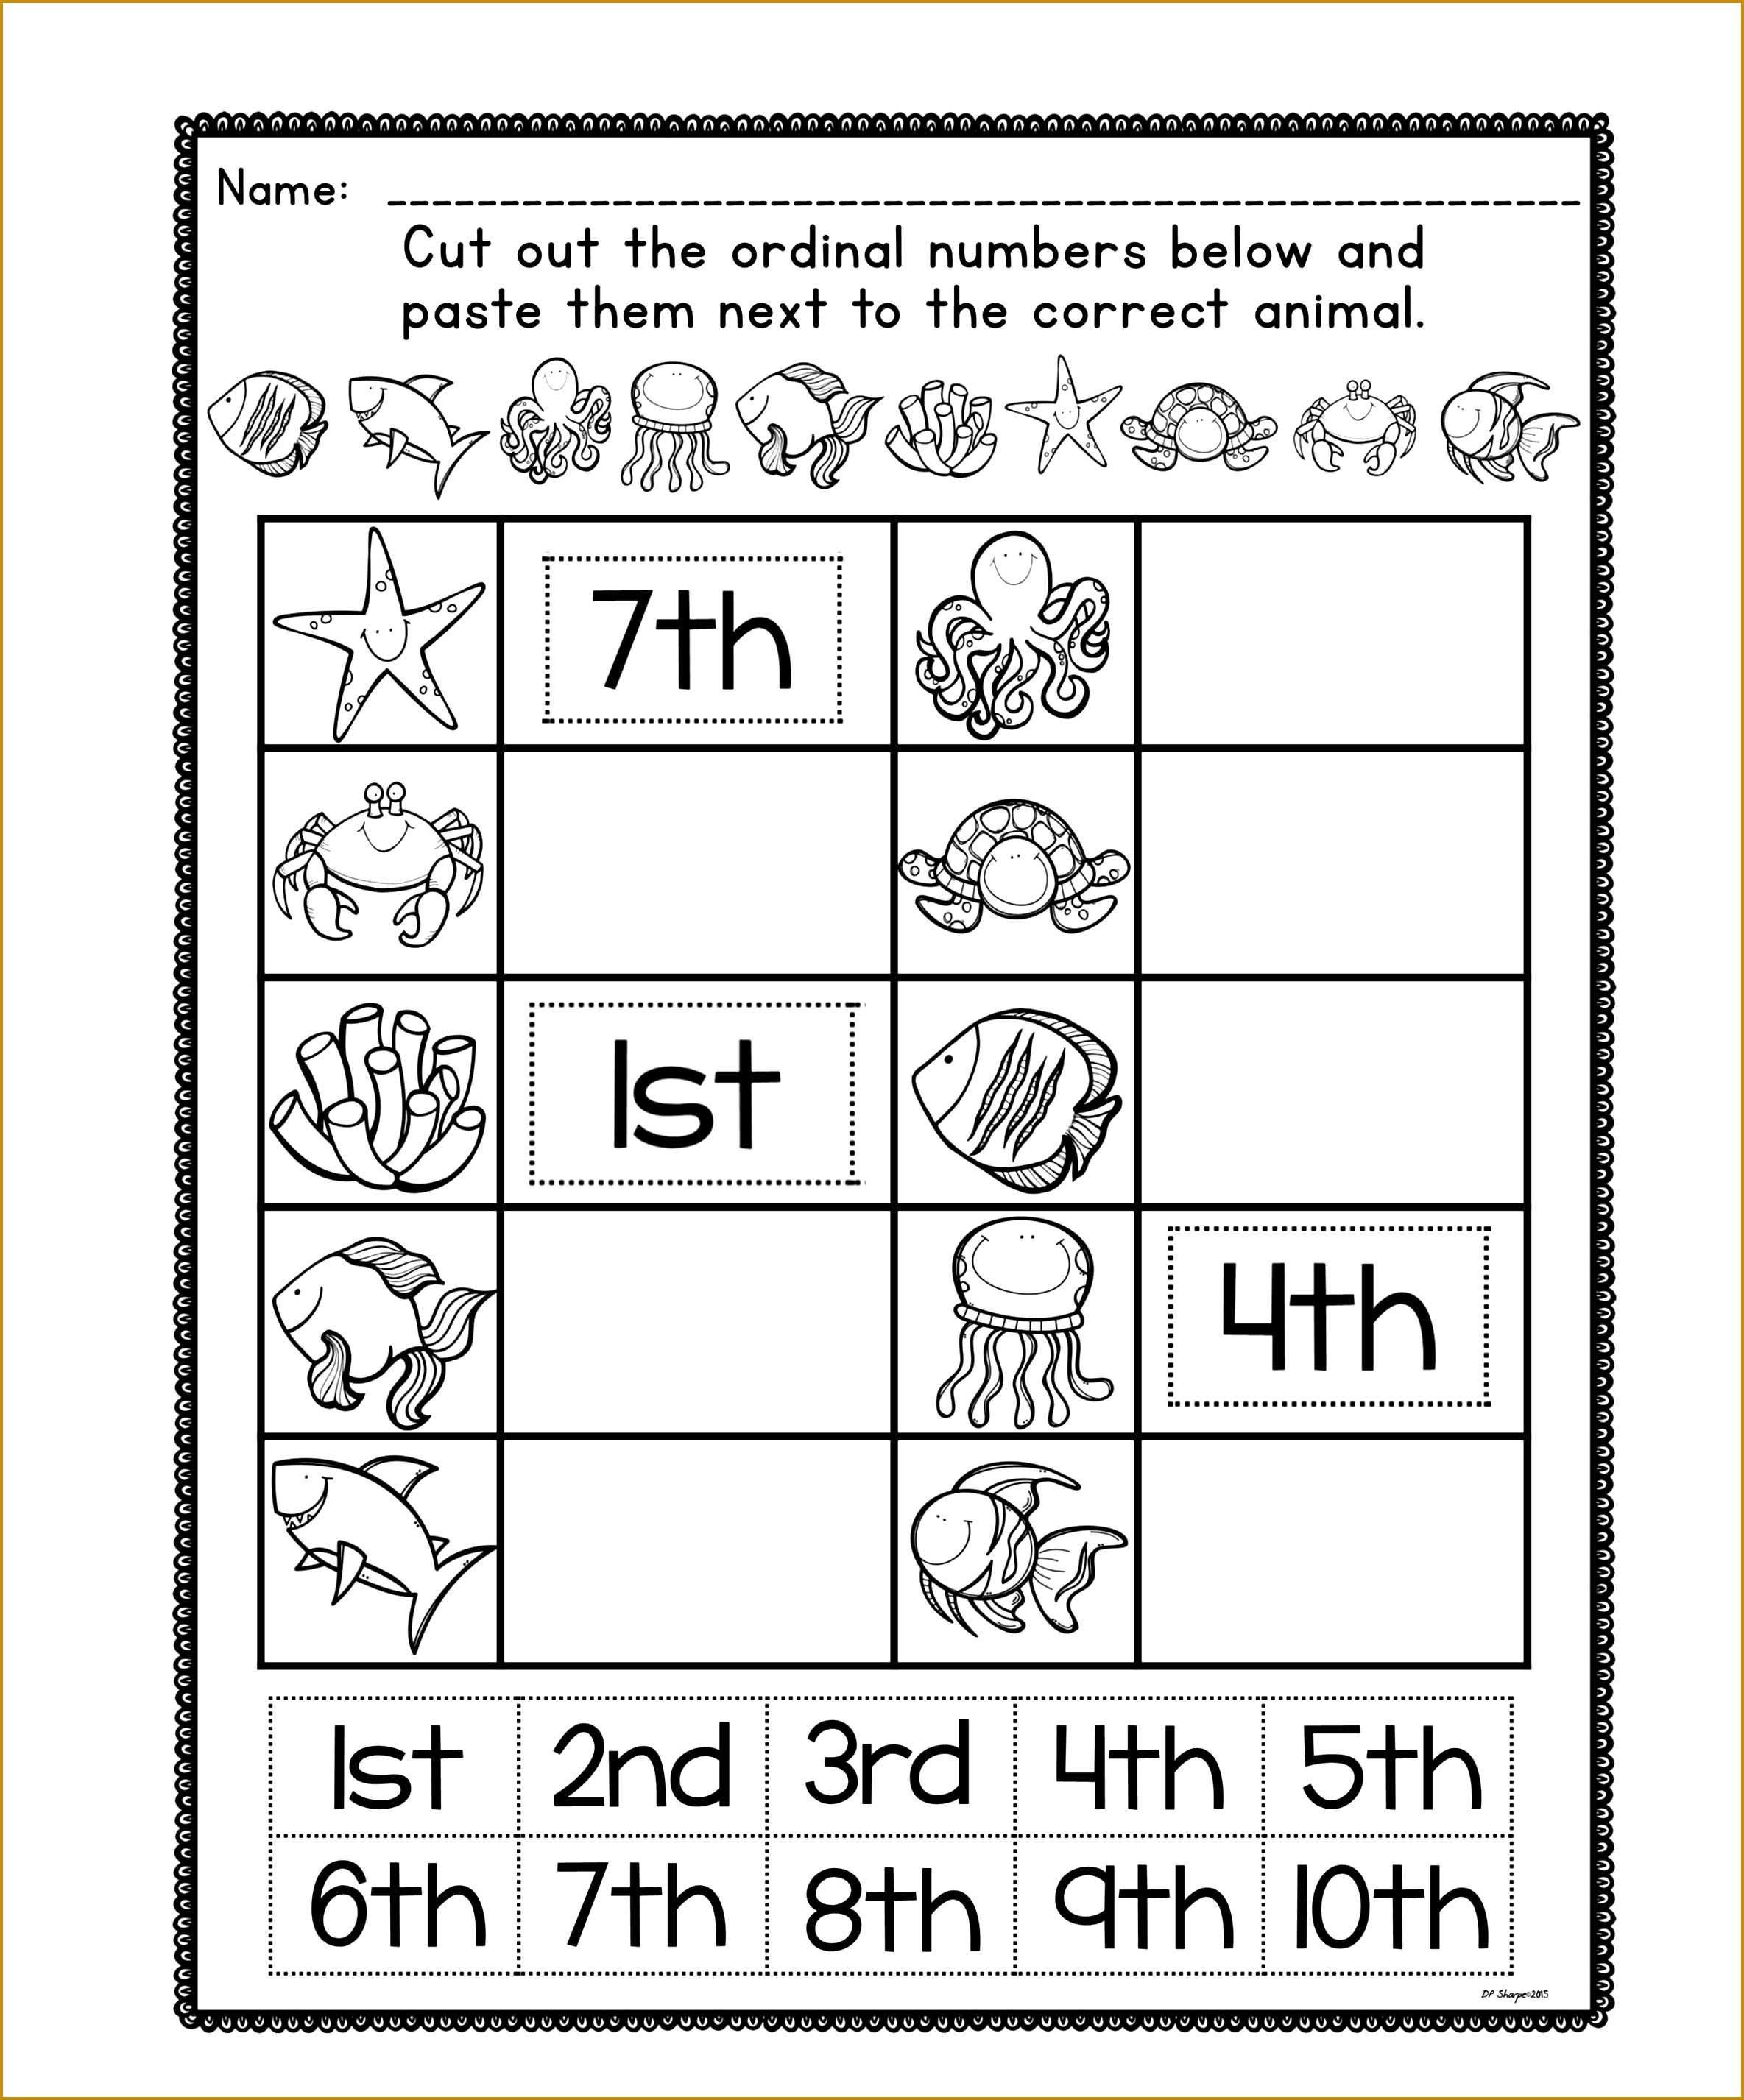 Ordinal Number Posters and Worksheets 23692853